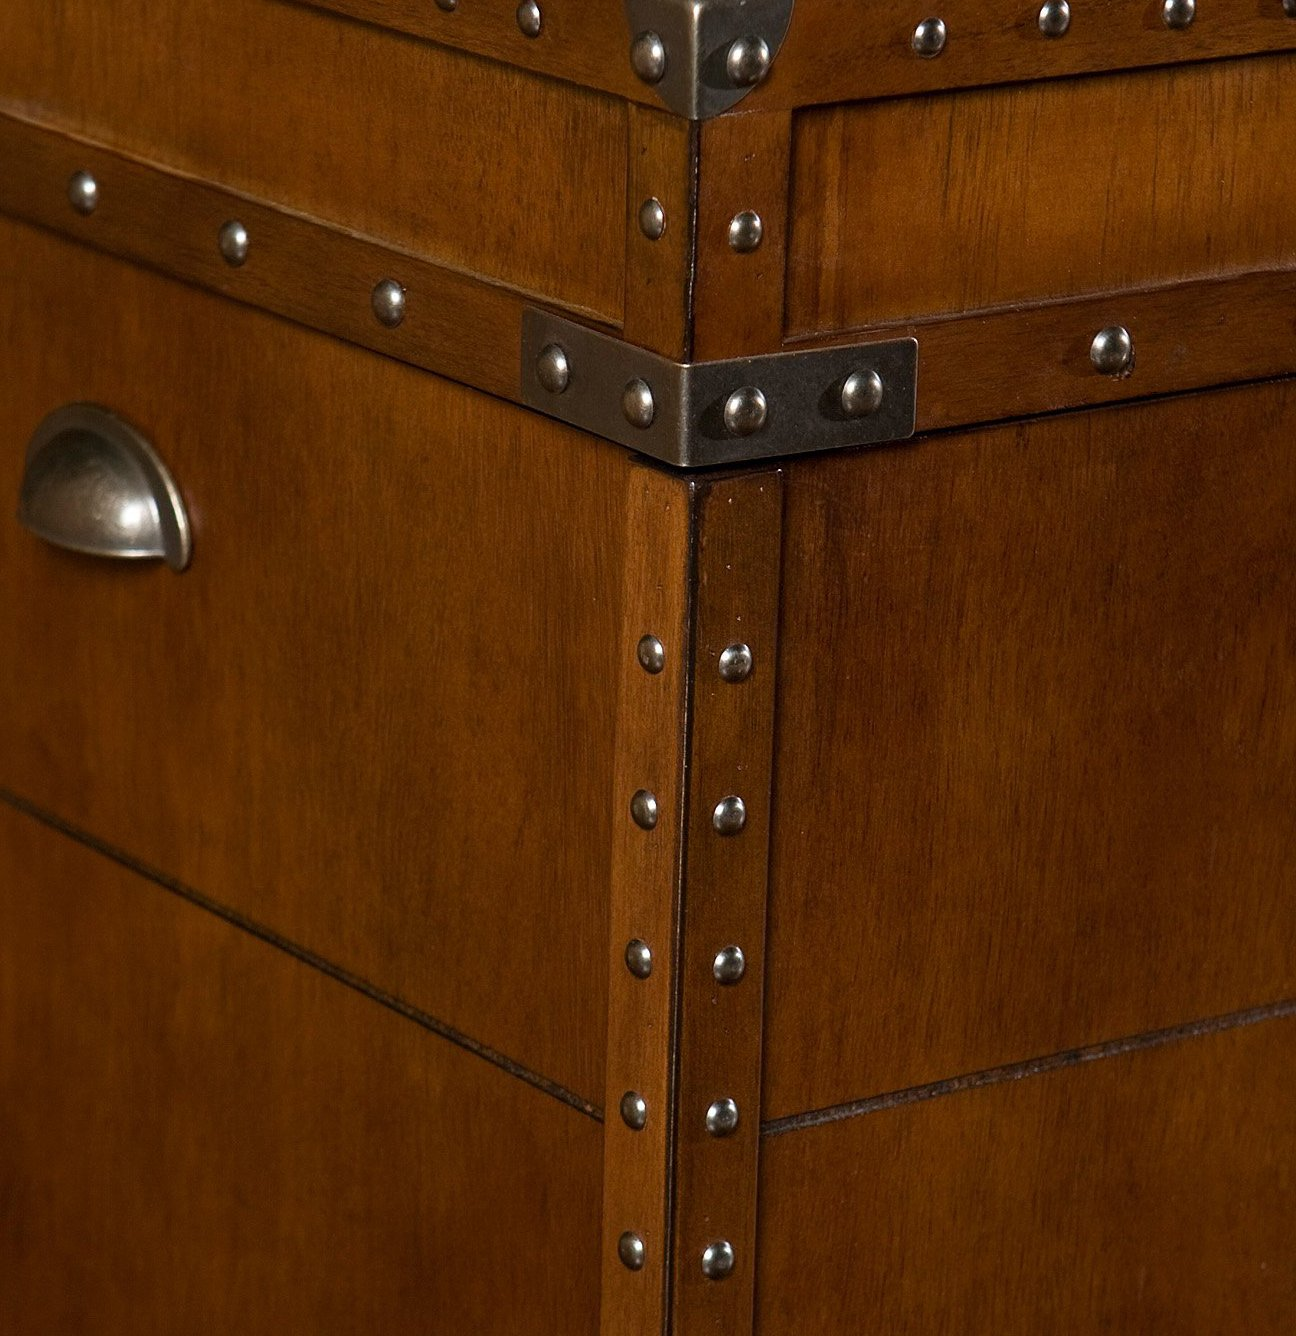 Southern Enterprises Steamer Trunk End Table - Rustic Nailhead Trim - Refinded Industrial Style by Southern Enterprises (Image #9)